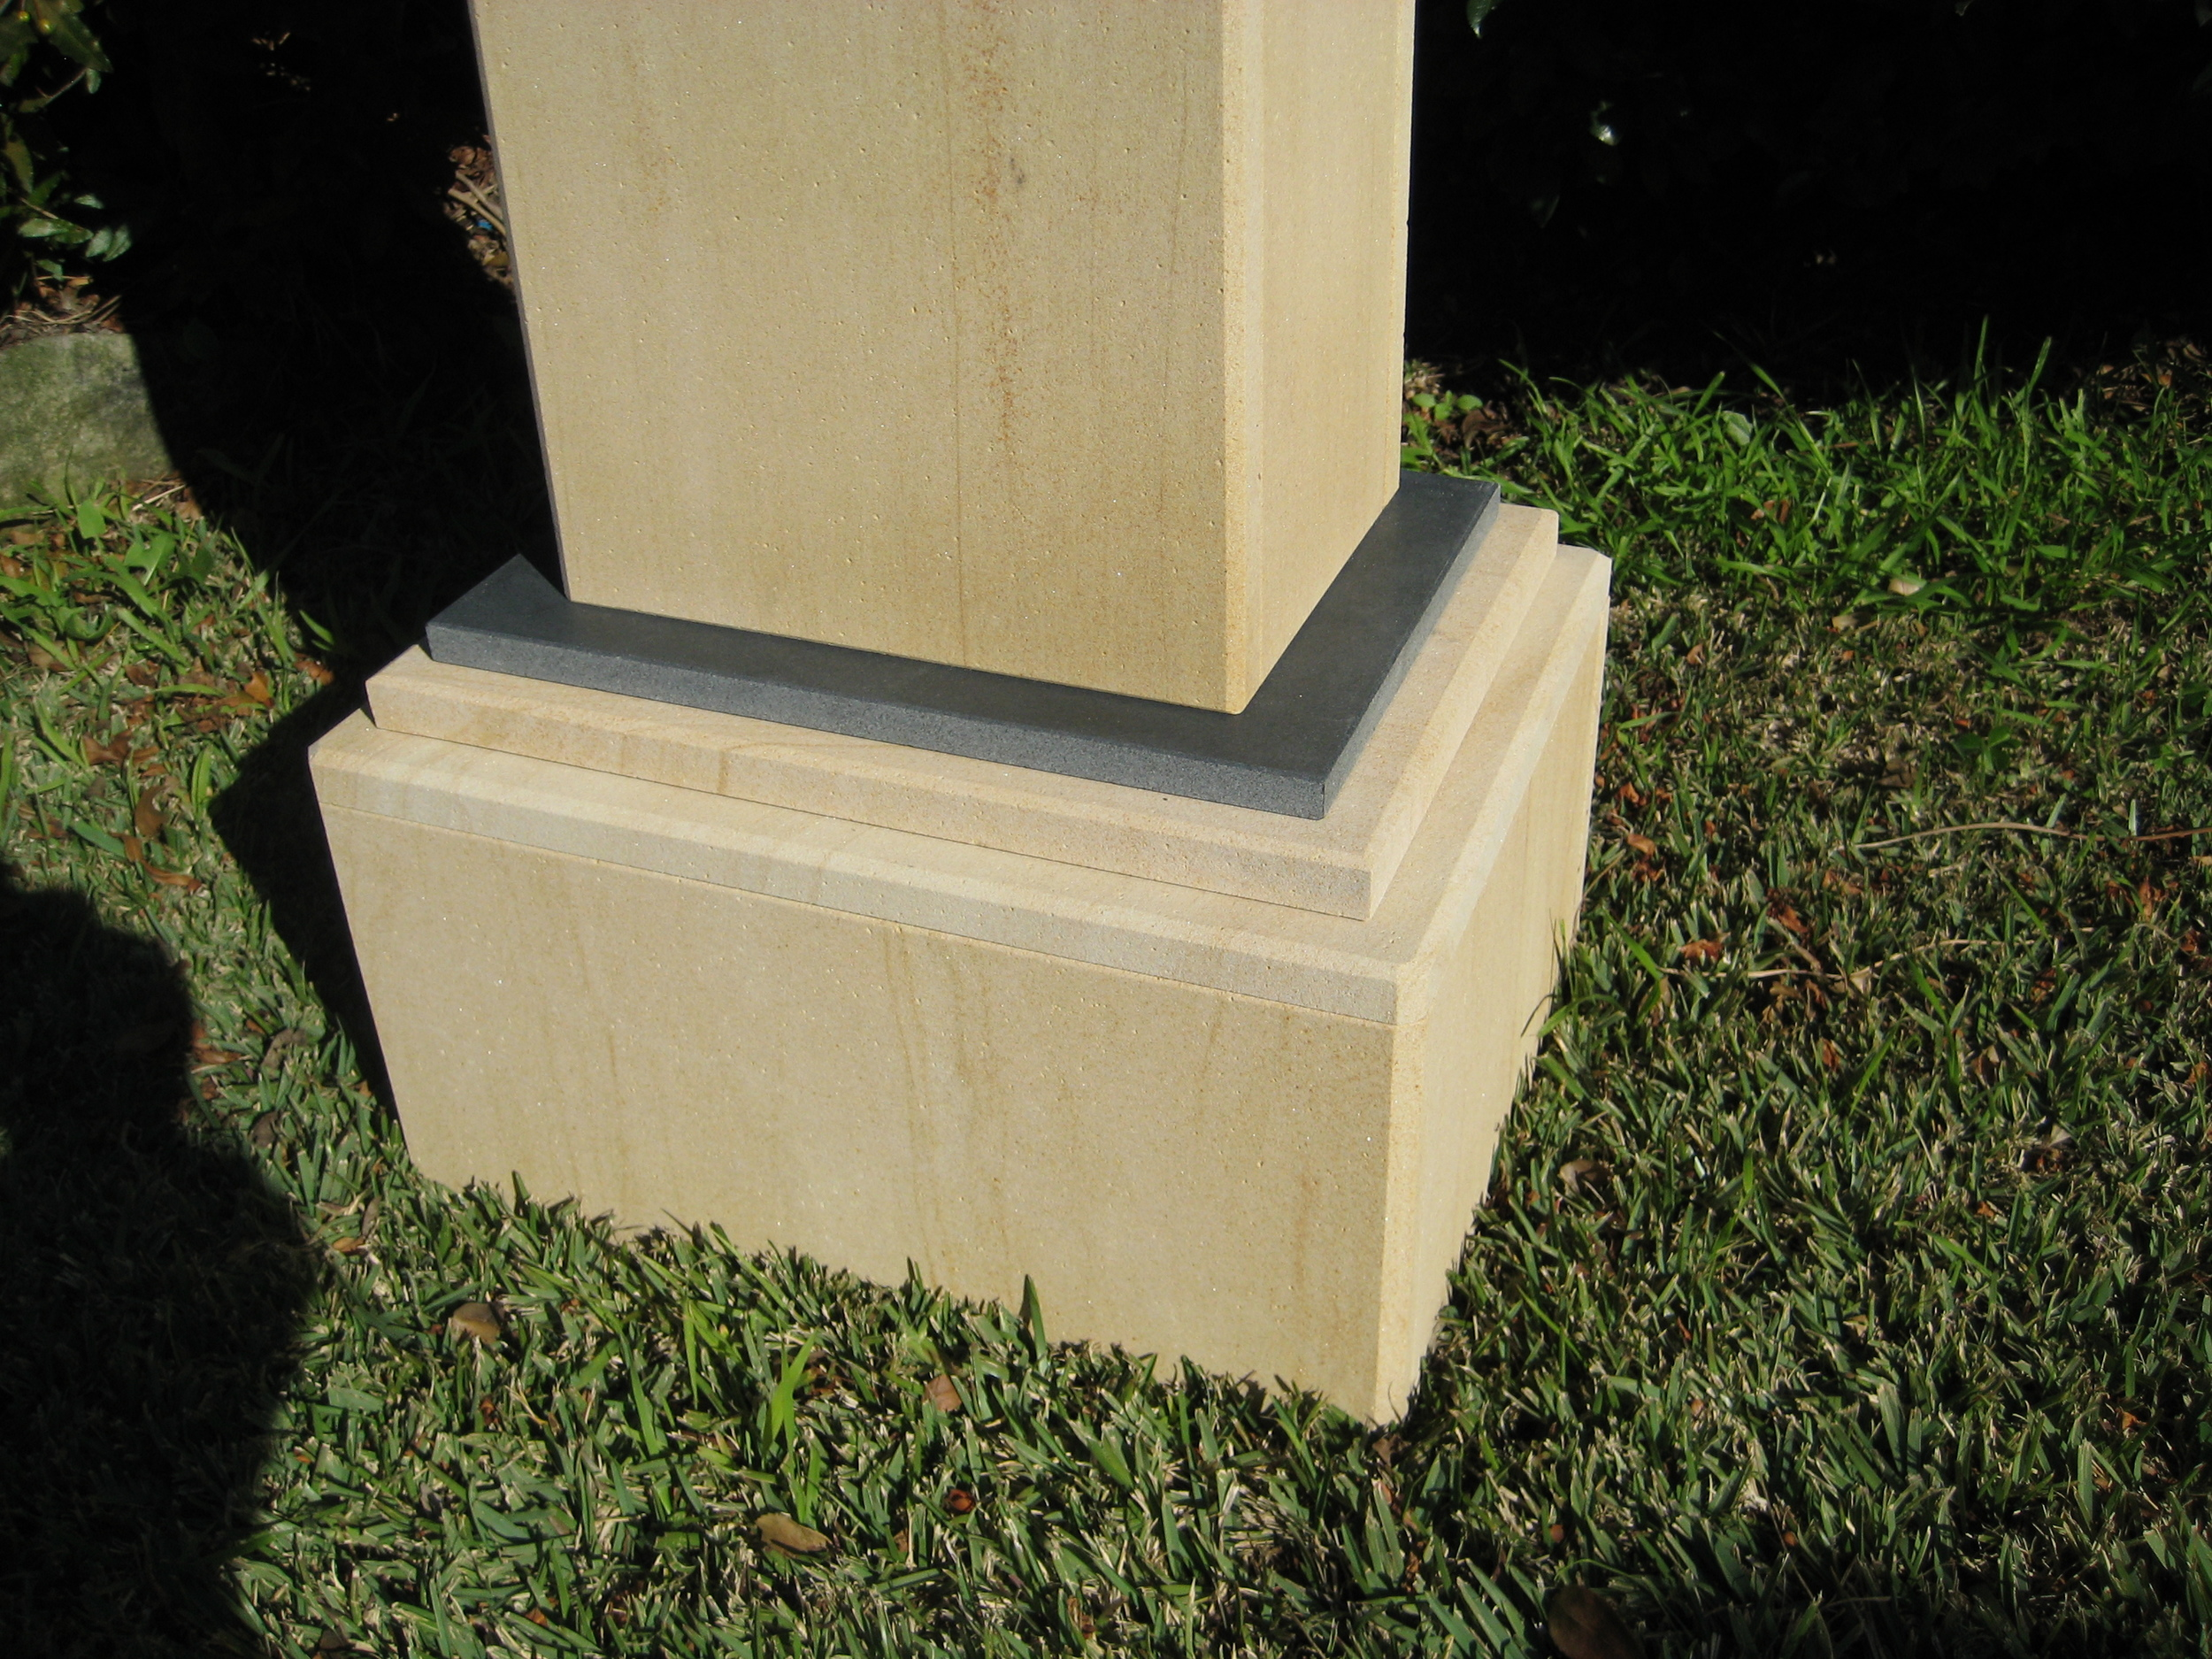 51. 200mm high base under letterbox to gain extra hight $180